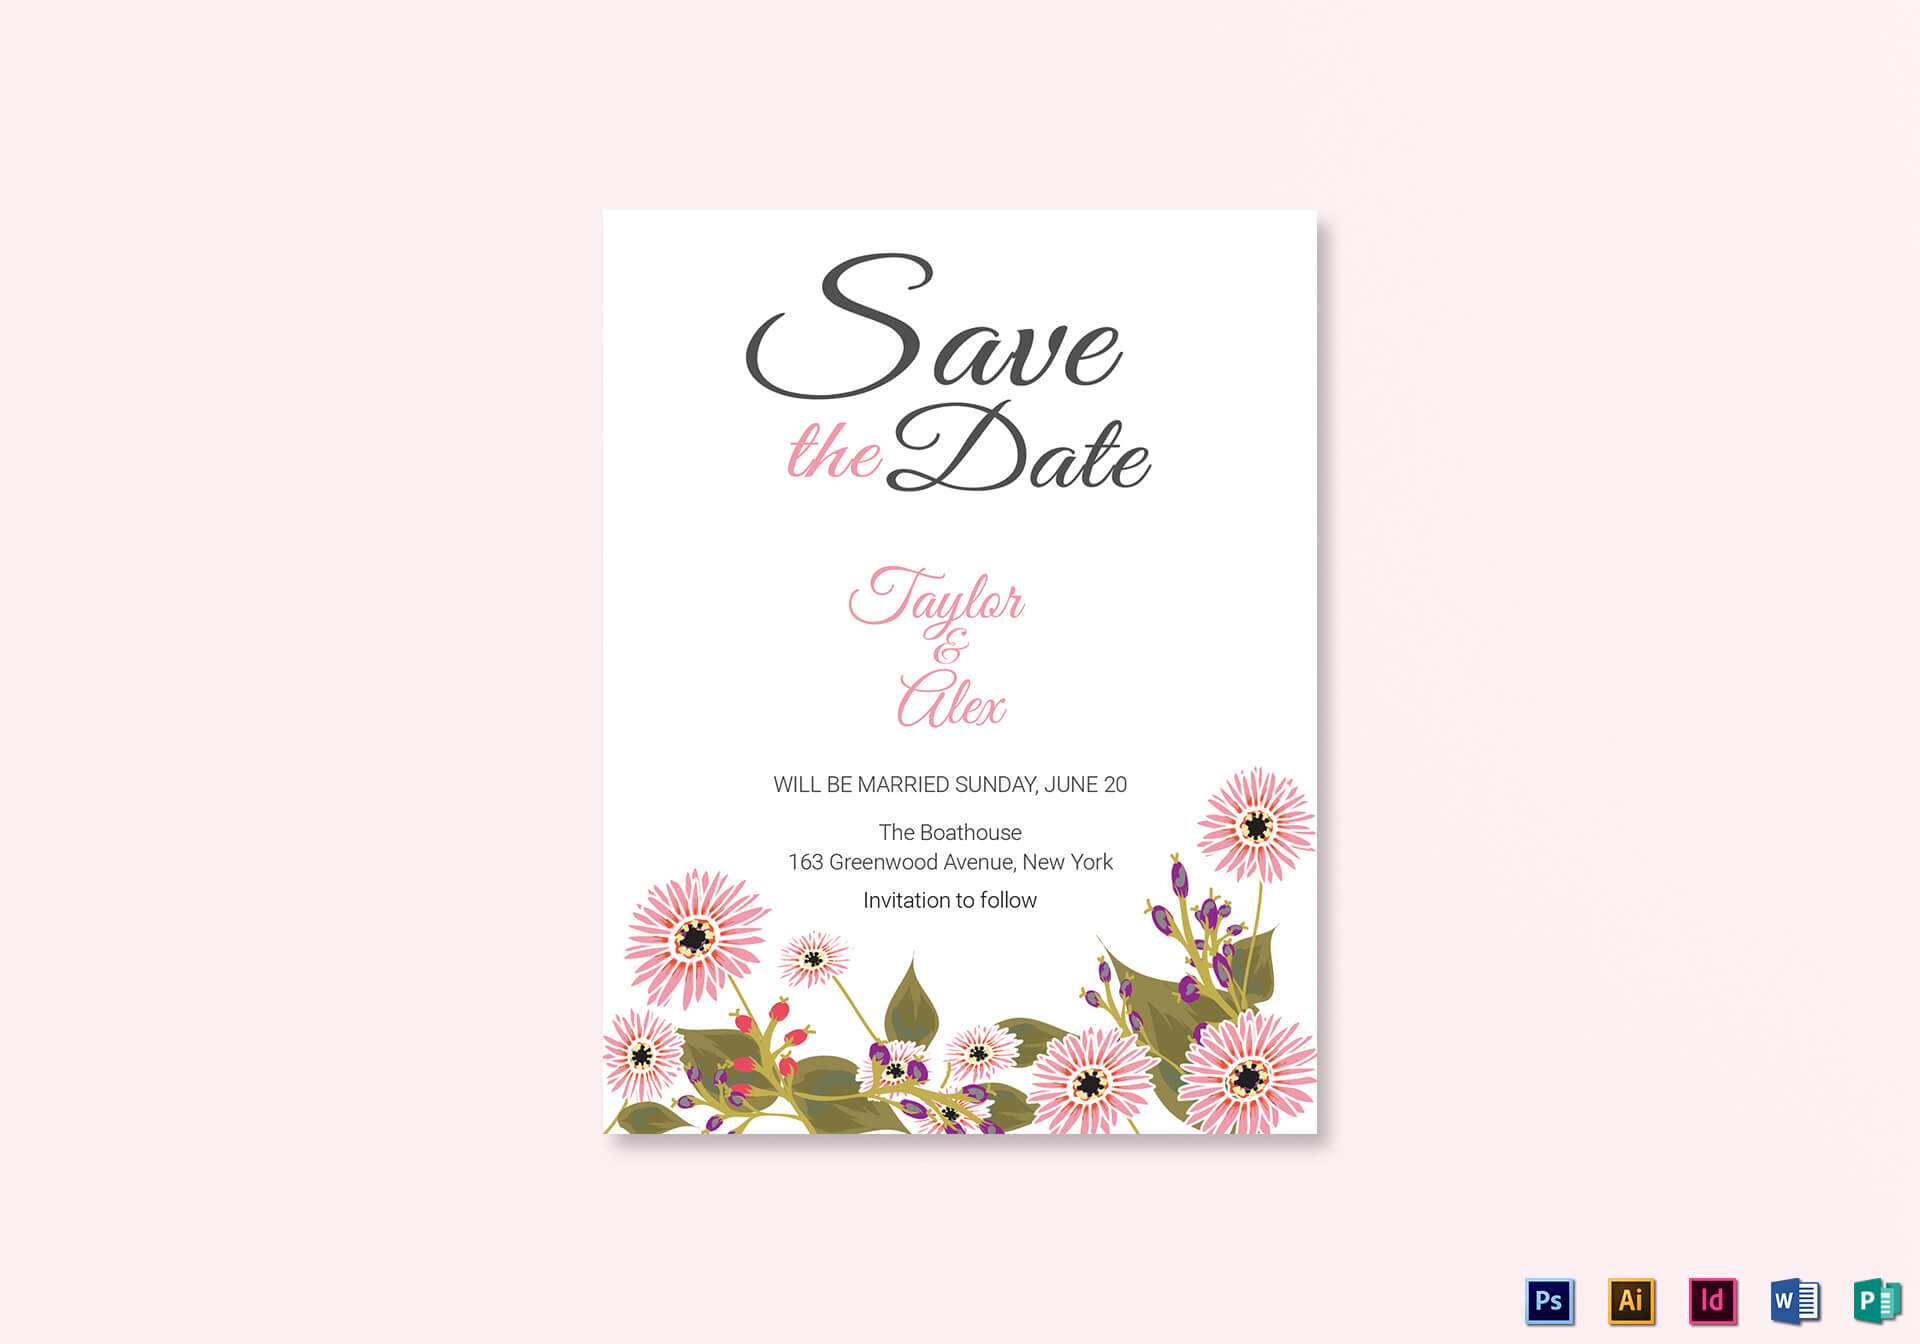 033 Template Ideas Save The Date Remarkable Word Invitation With Save The Date Template Word